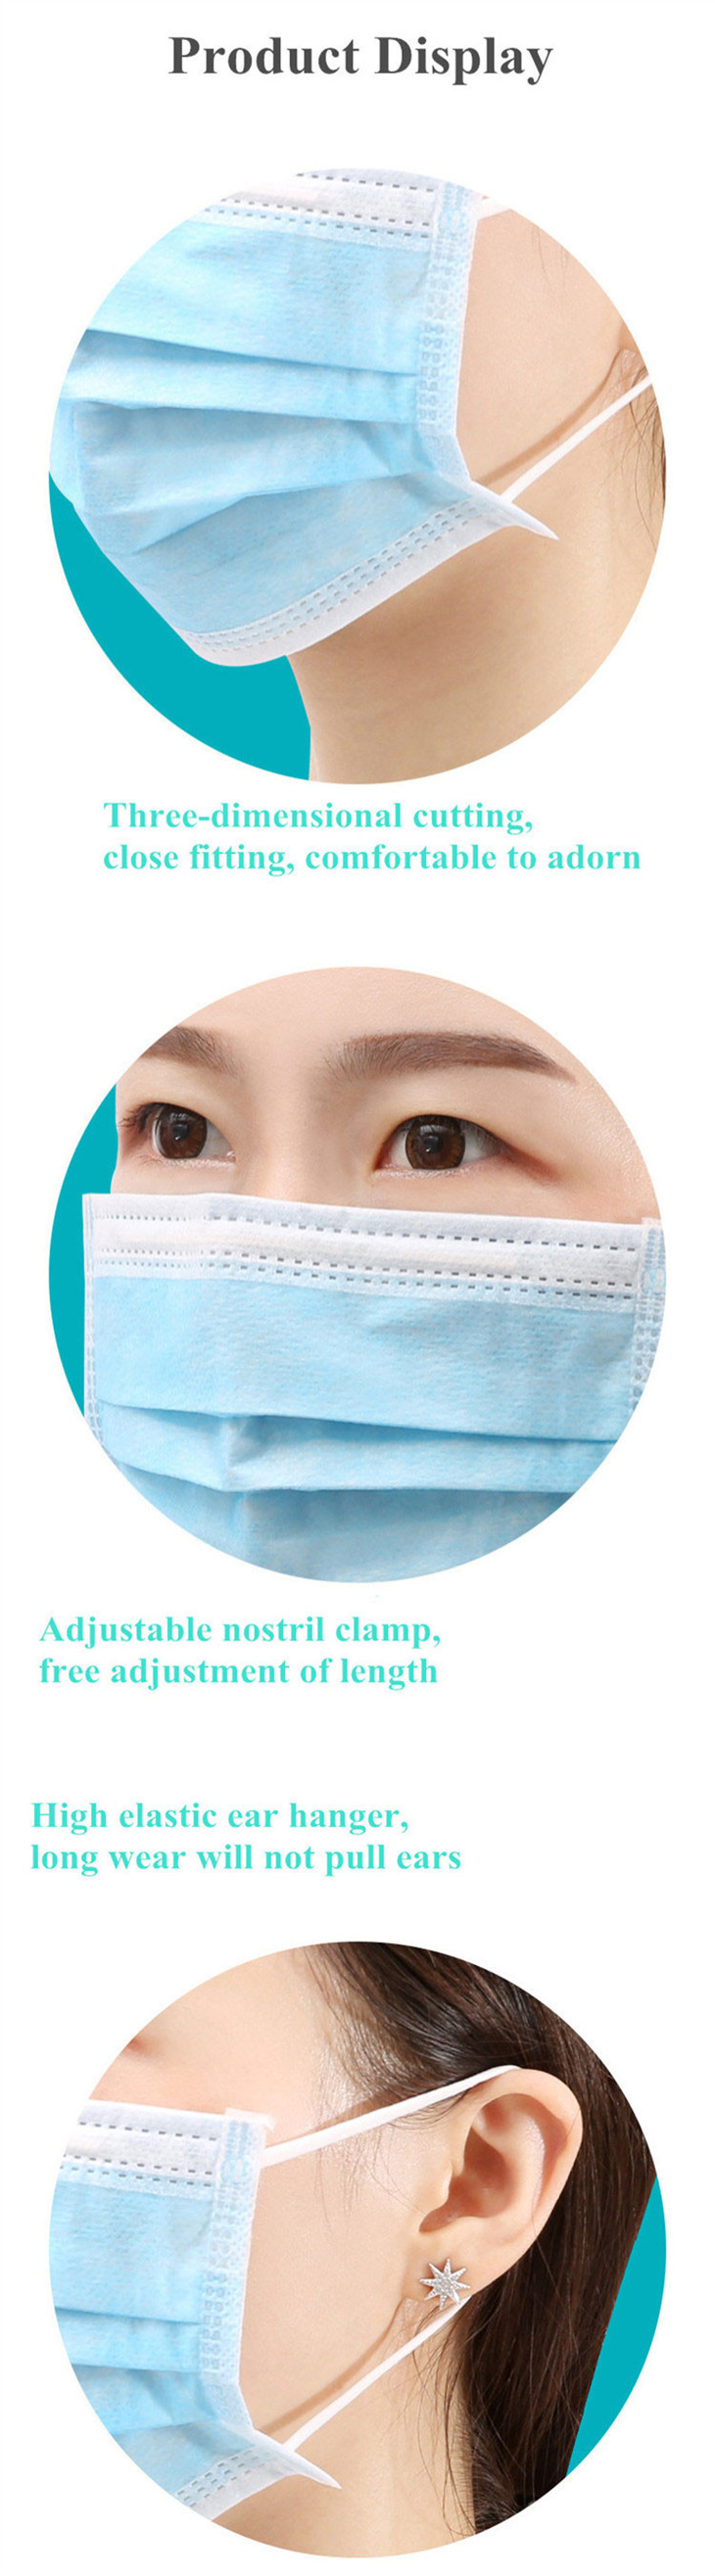 On Mask Mask Kids Breathing Face Mask easy disposable com Product - Disposable Alibaba Buy Easy